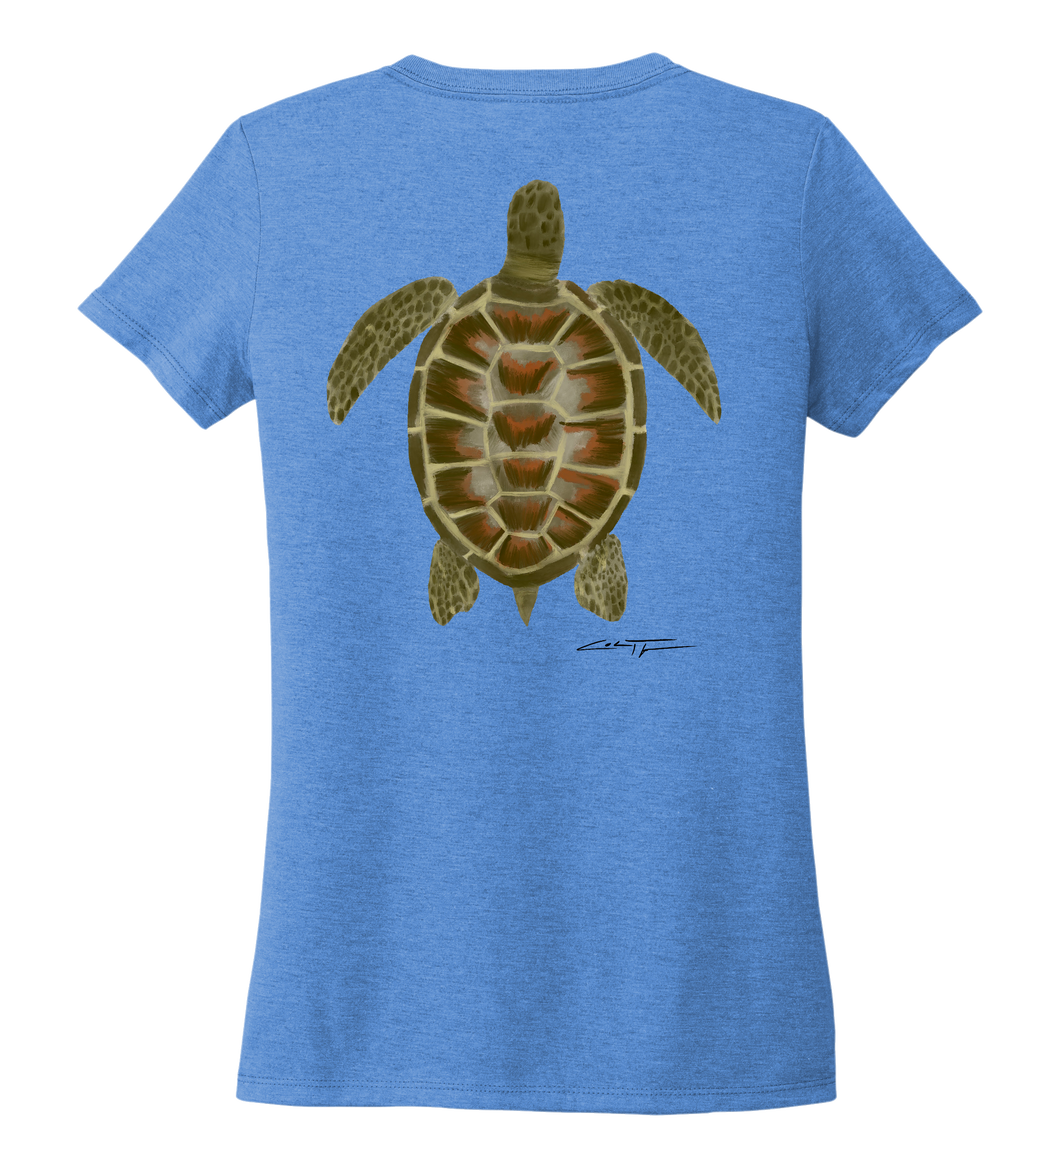 Colin Thompson, Turtle, Women's V-neck T-shirt in Sky Blue